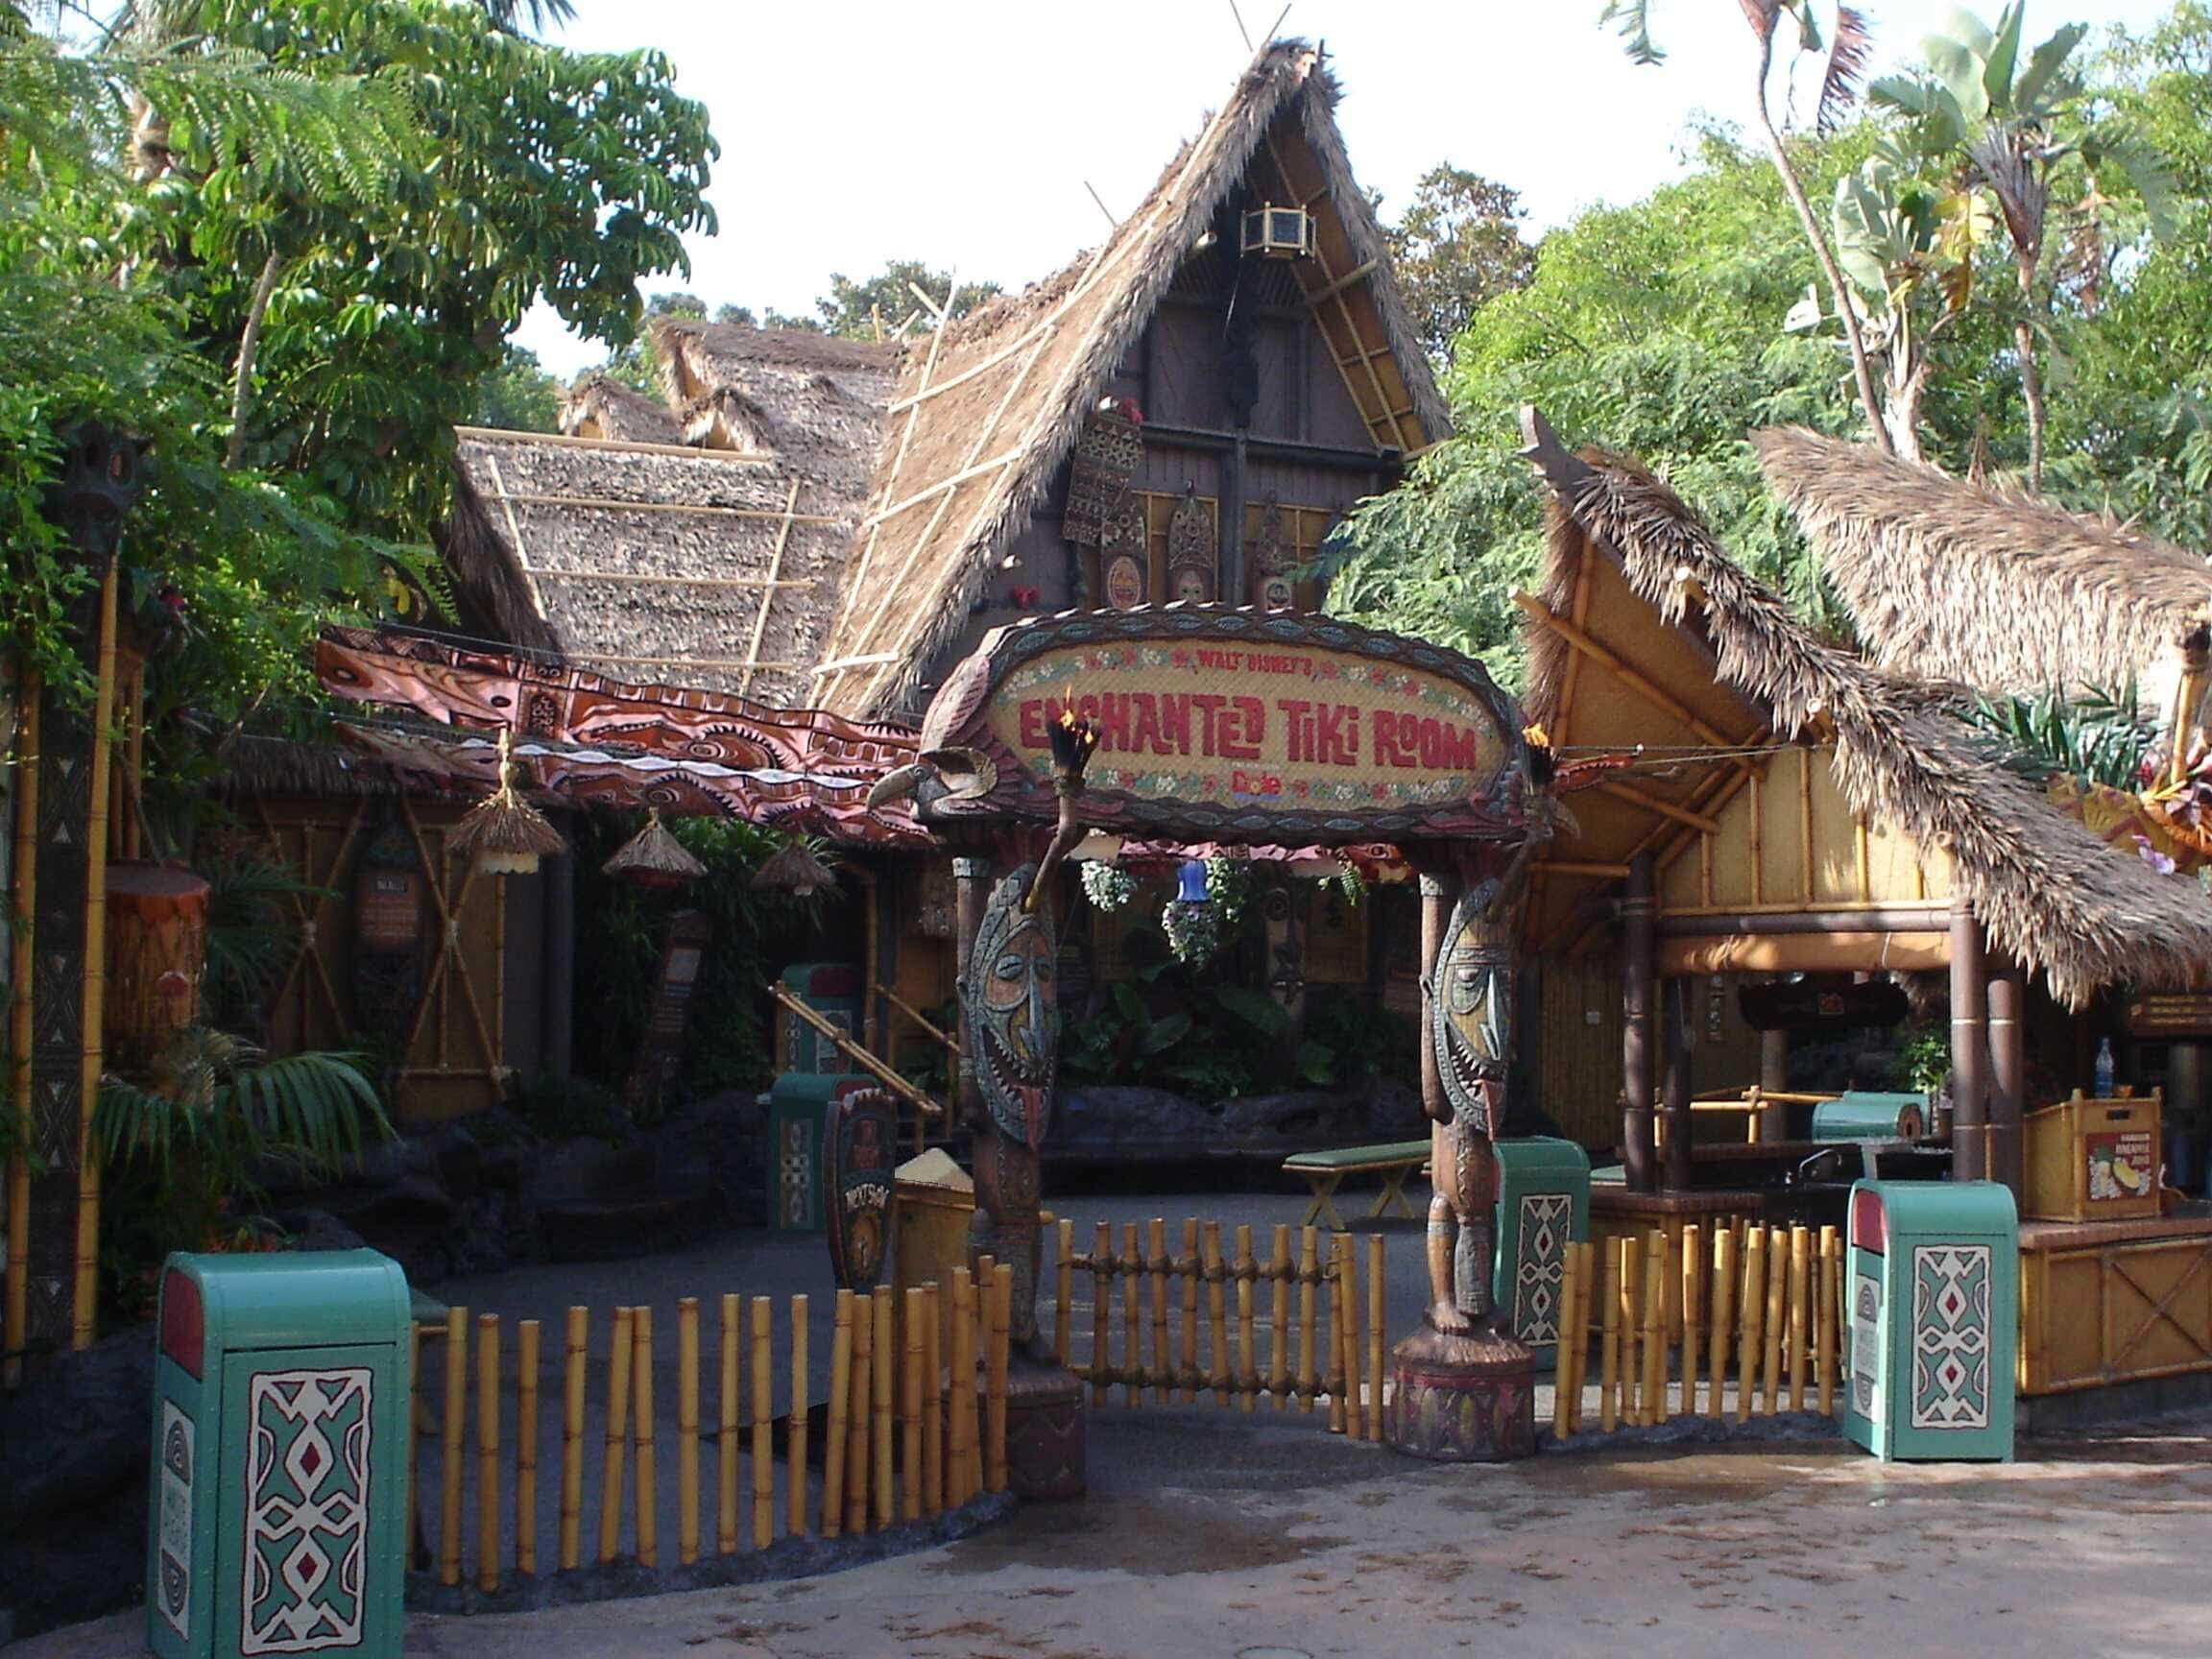 Enchanted Tiki Room Things to do in disneyland